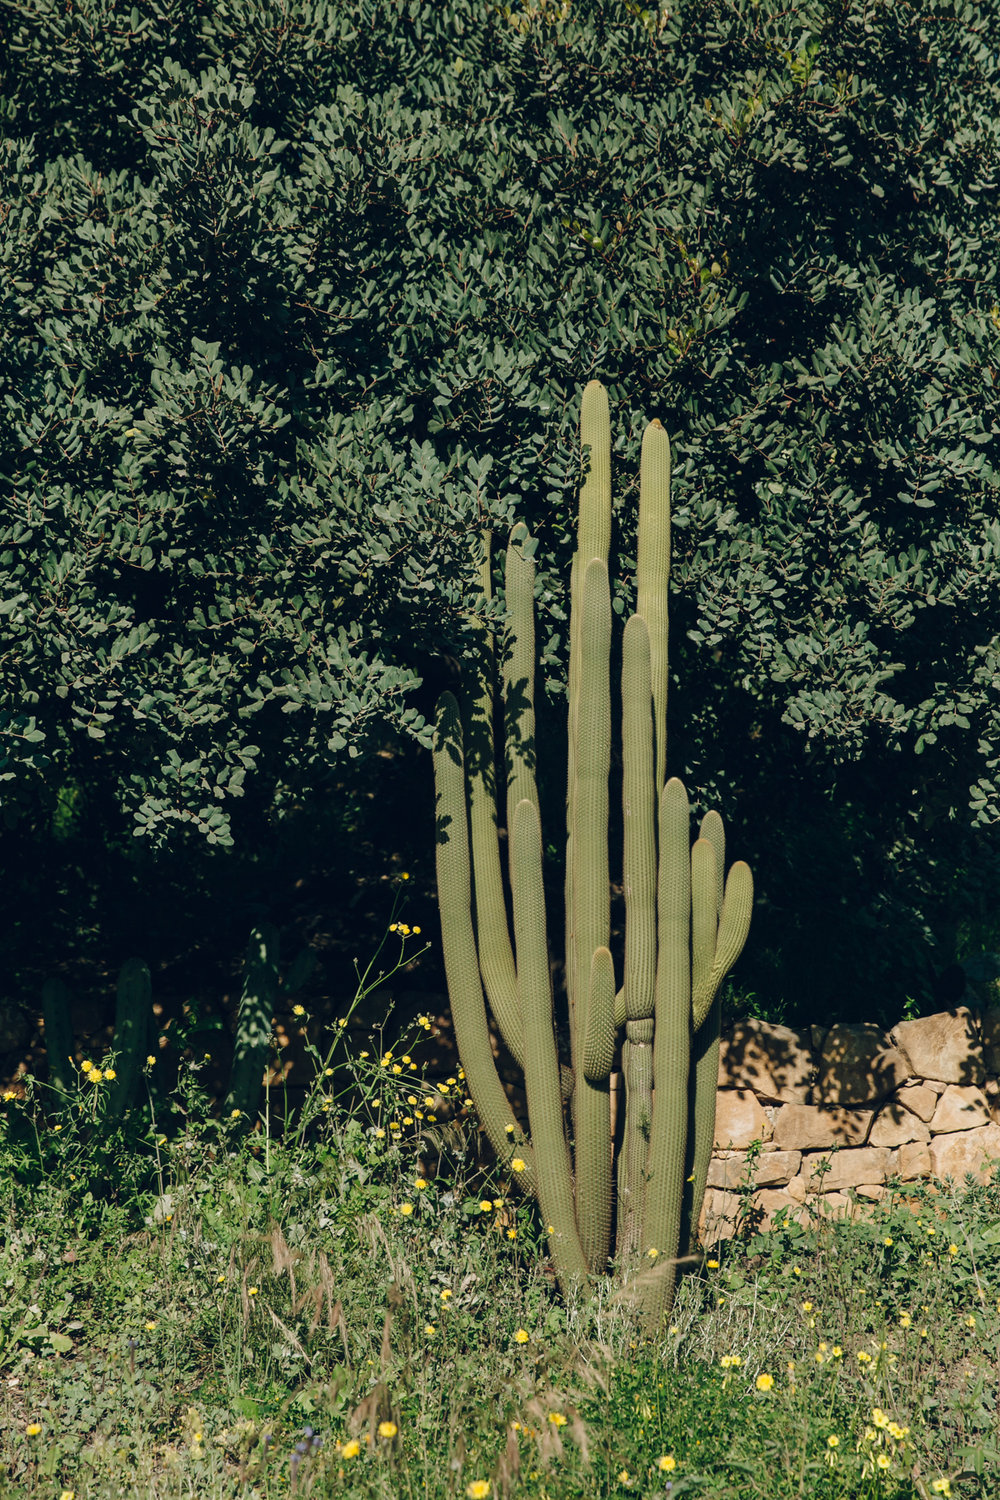 Huge cactus in Malaga Botanical Garden Spain